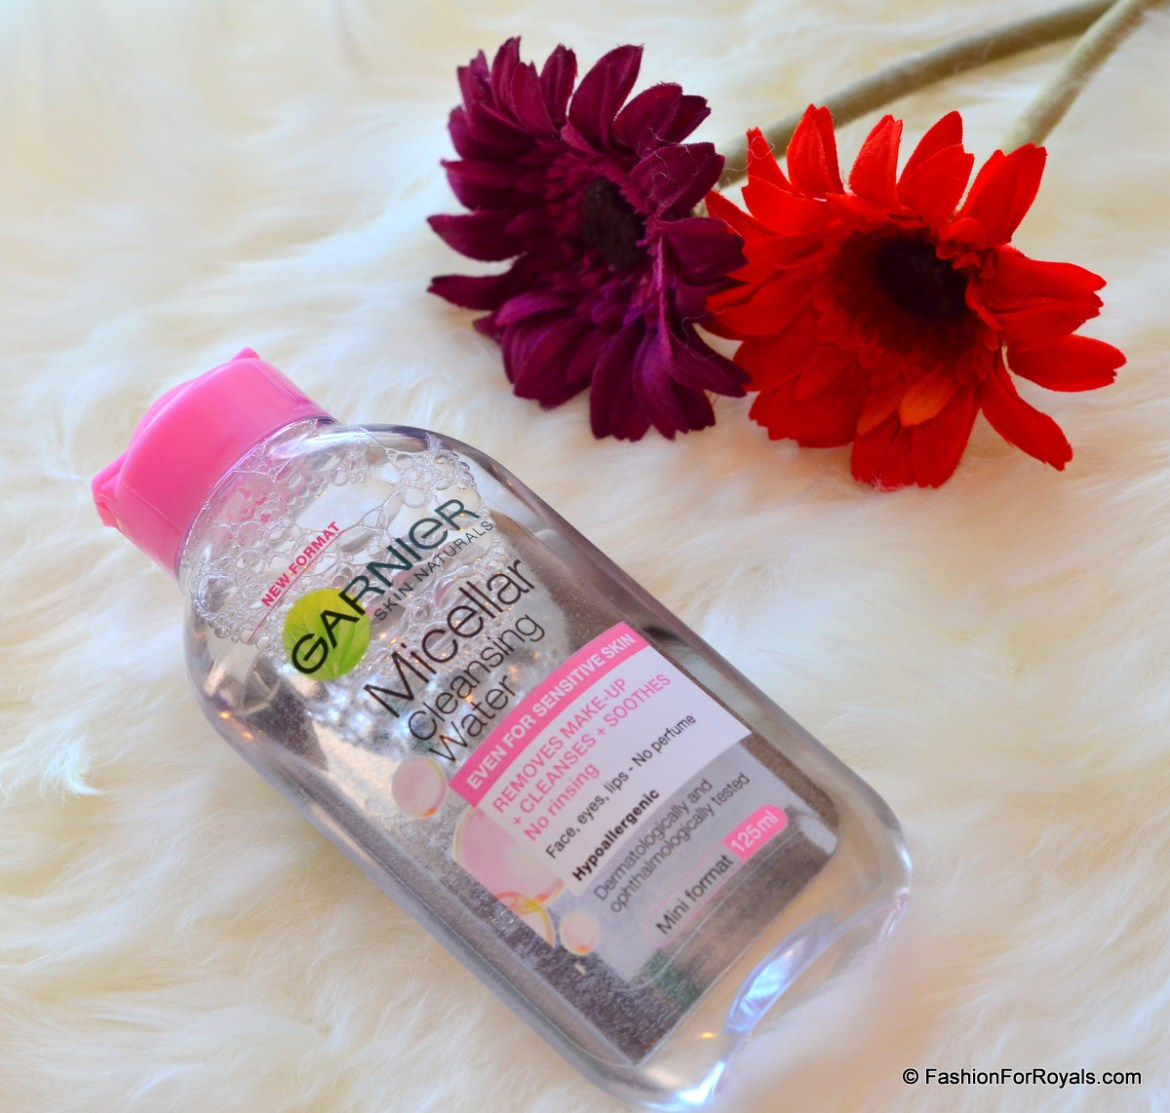 Garnier-Micellar-Water-Review